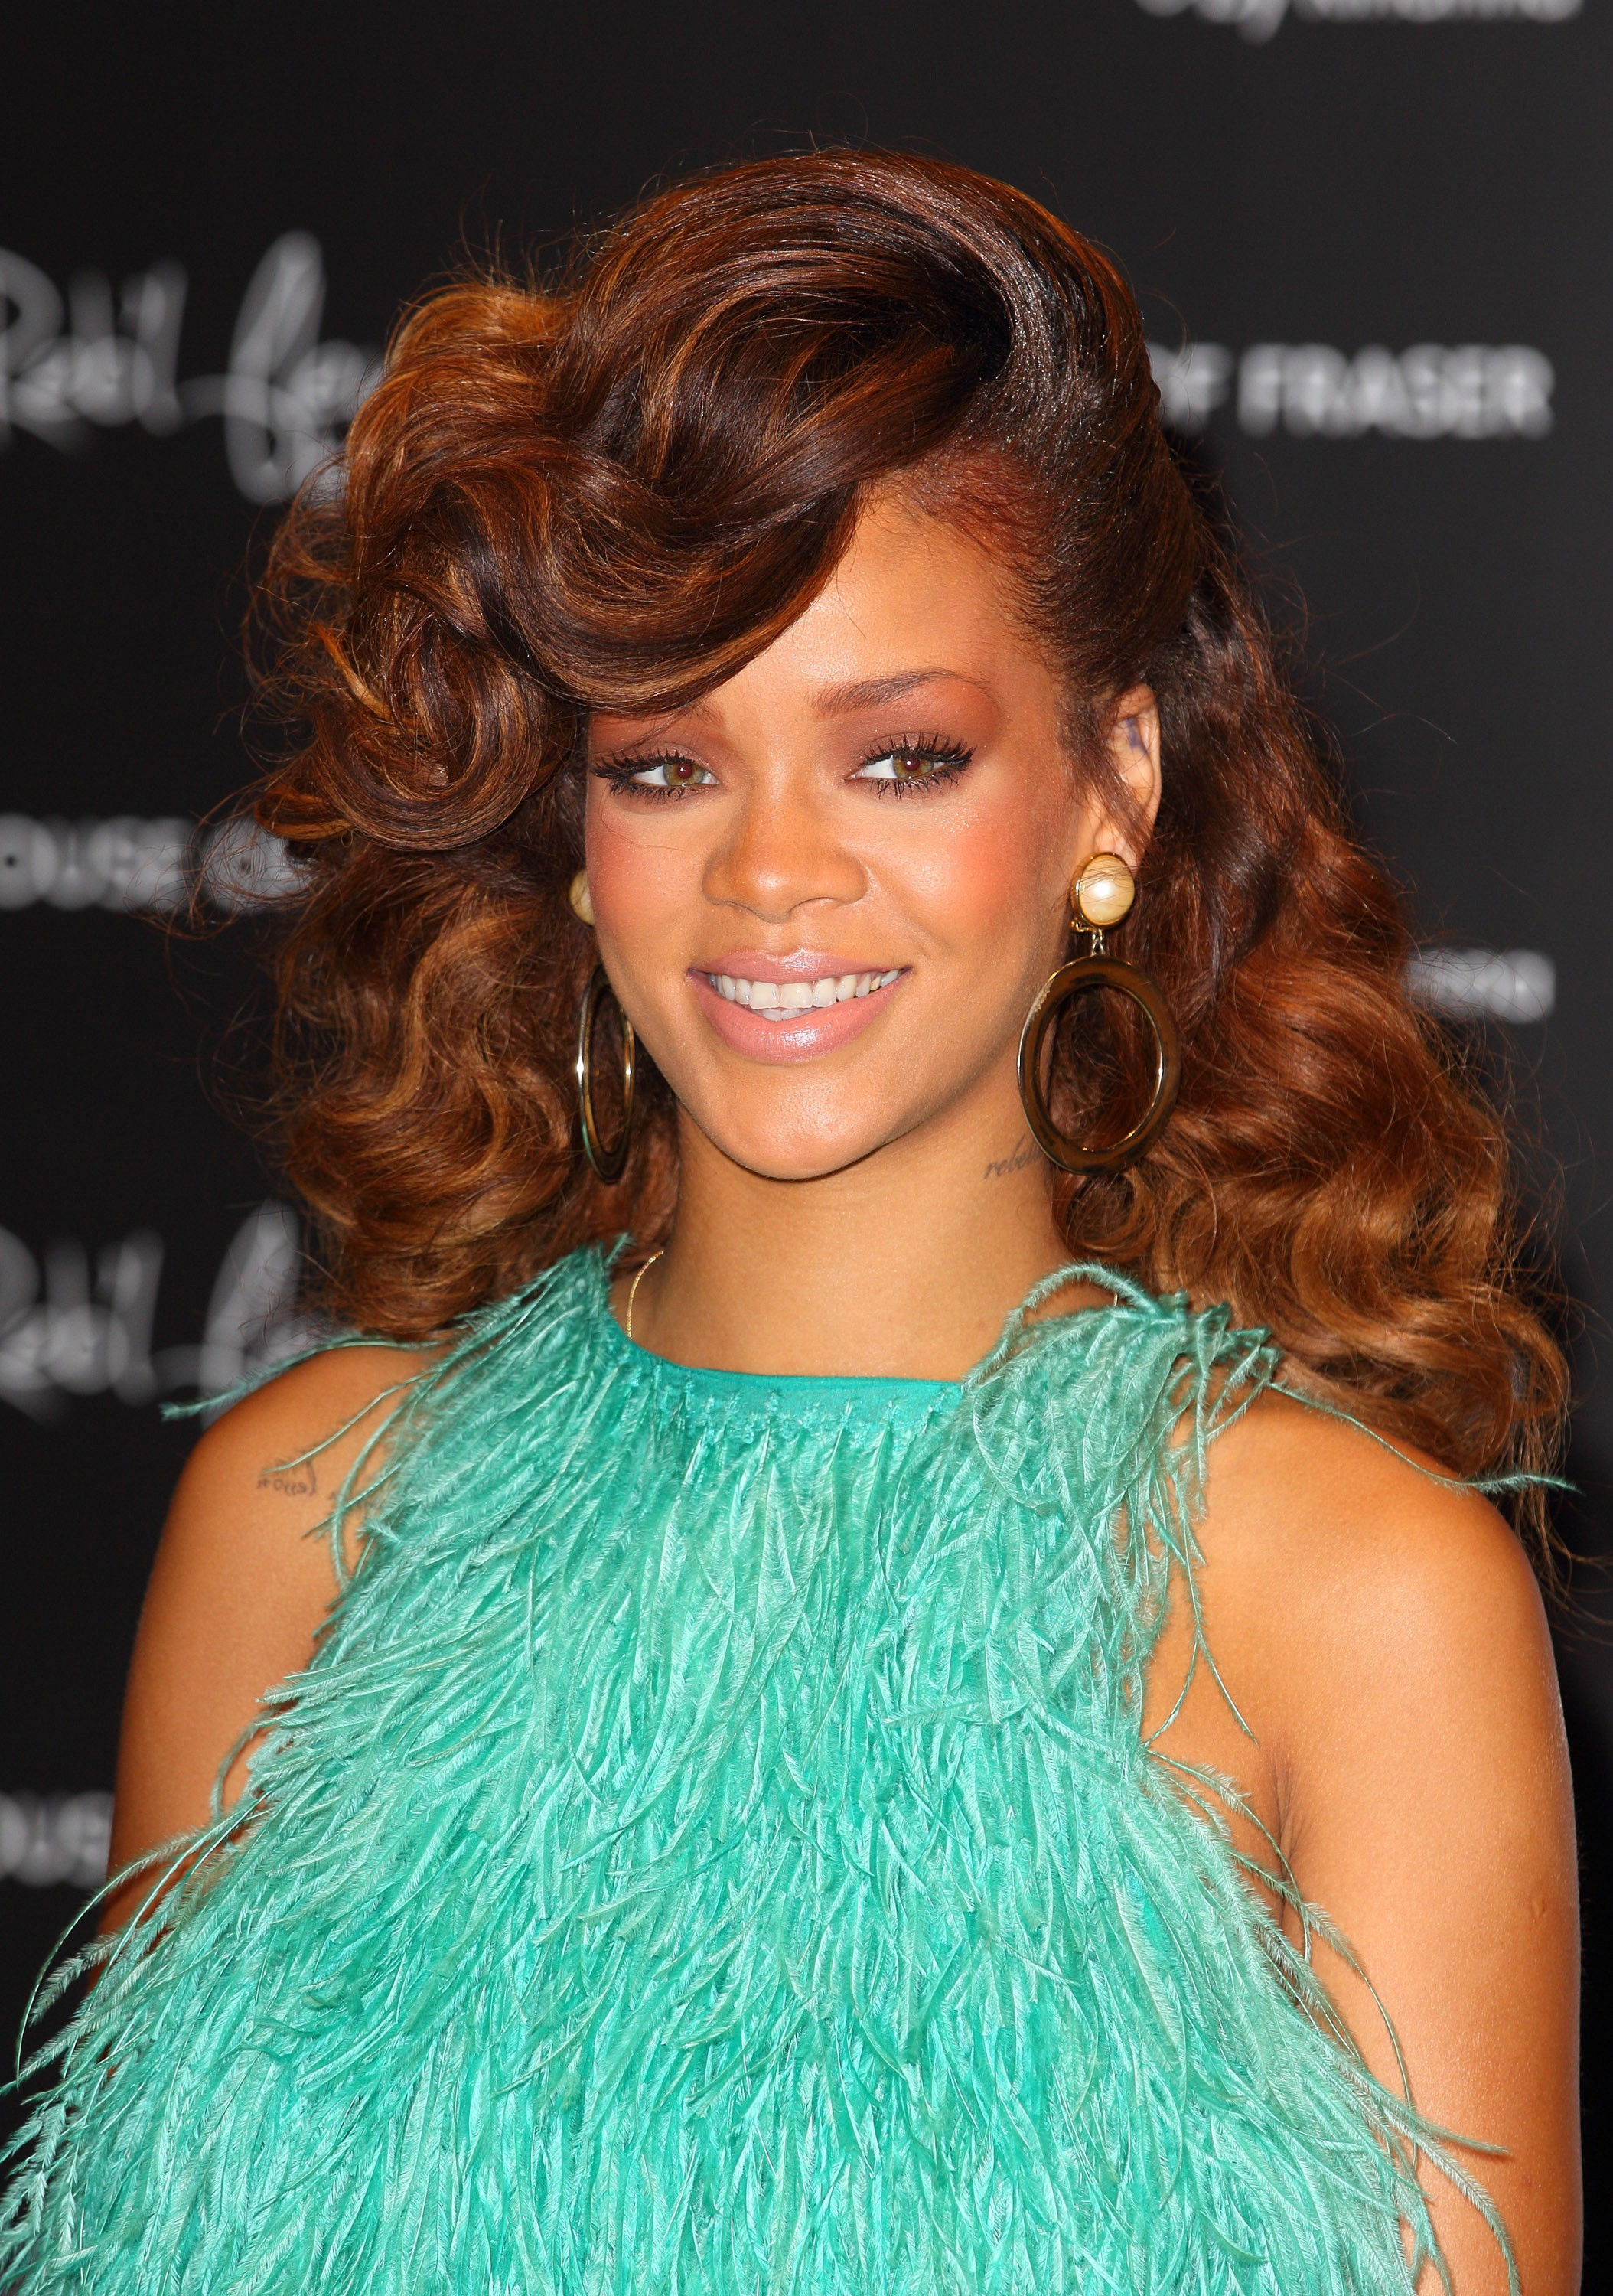 Back to basics, Rihanna reclaims her femininity, and lays rest to her hard edgy signature. She's free and flirty in this retro look.